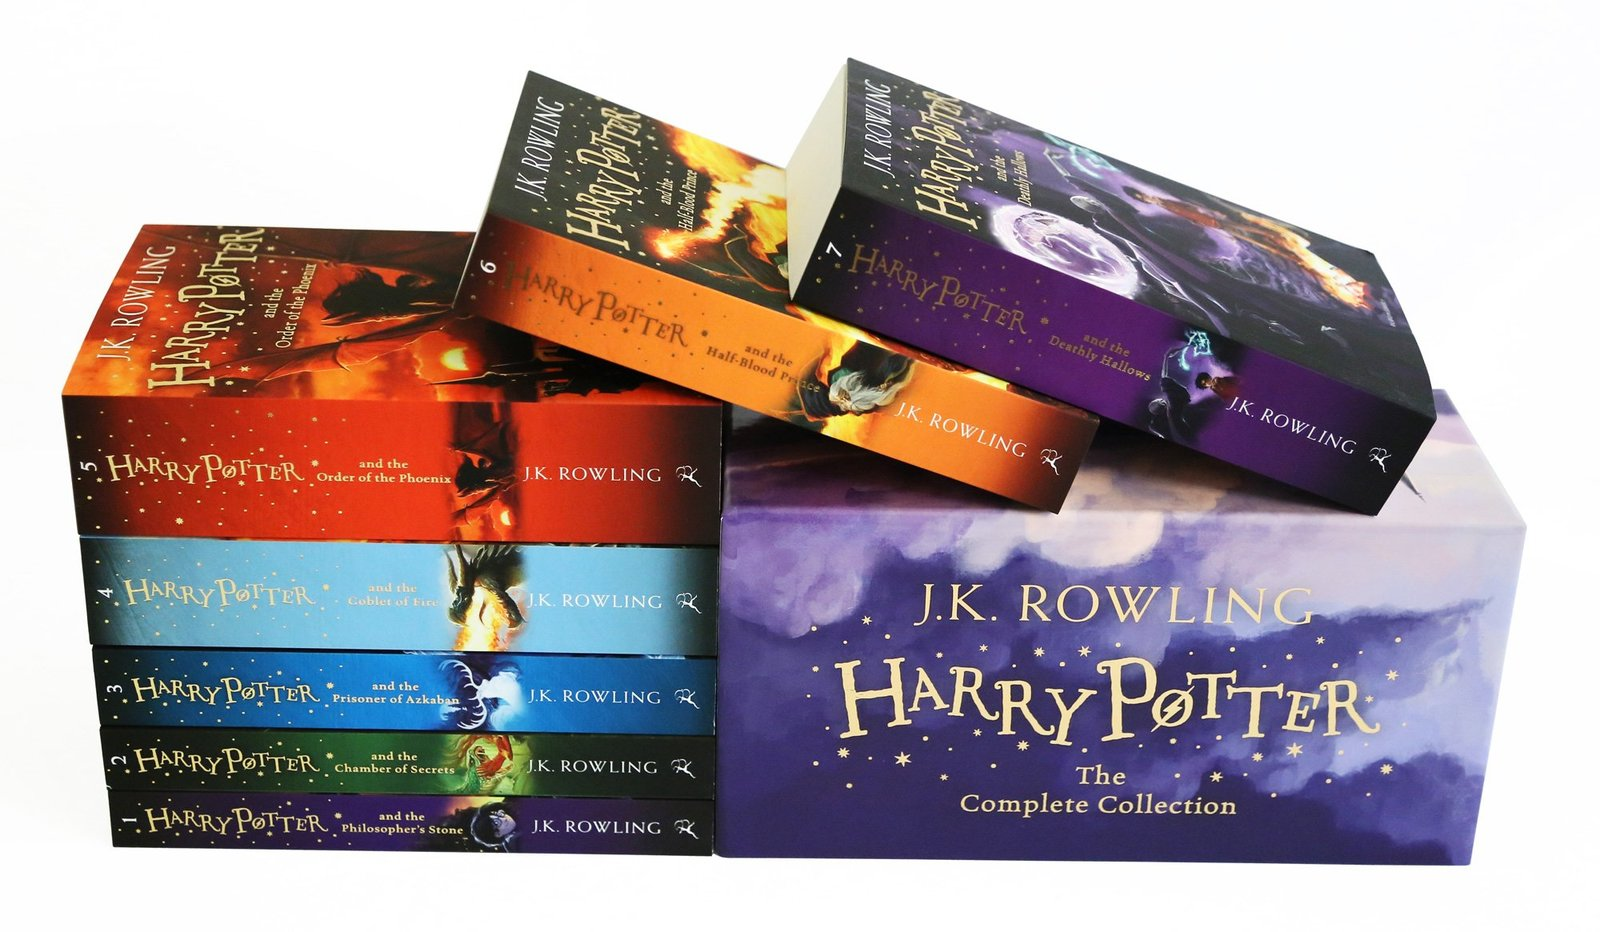 Harry Potter Box Set: the Complete Collection by J.K. Rowling image